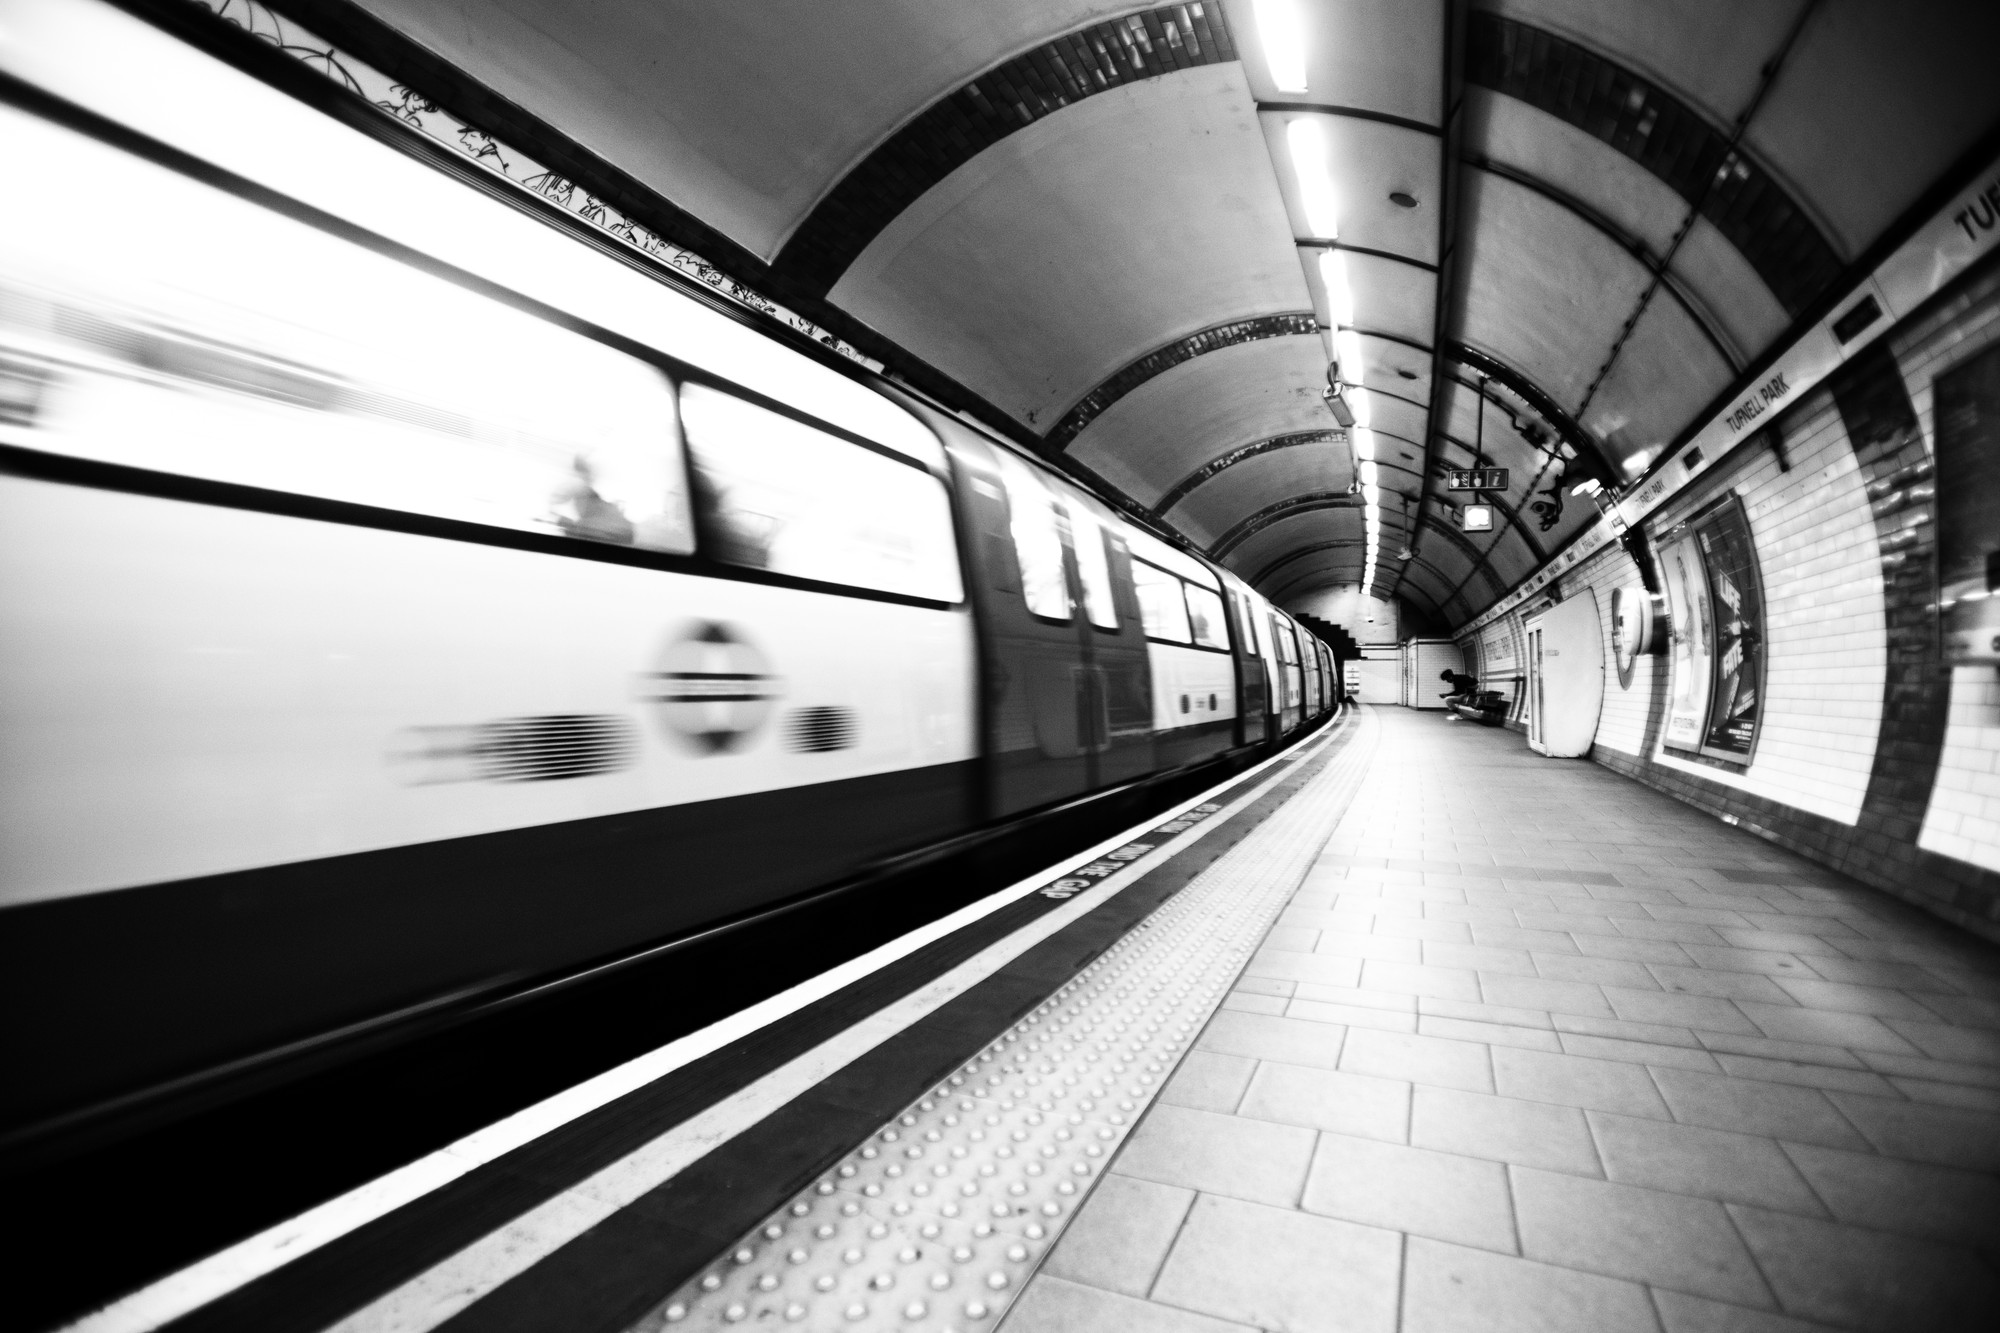 london-underground-motion-blur